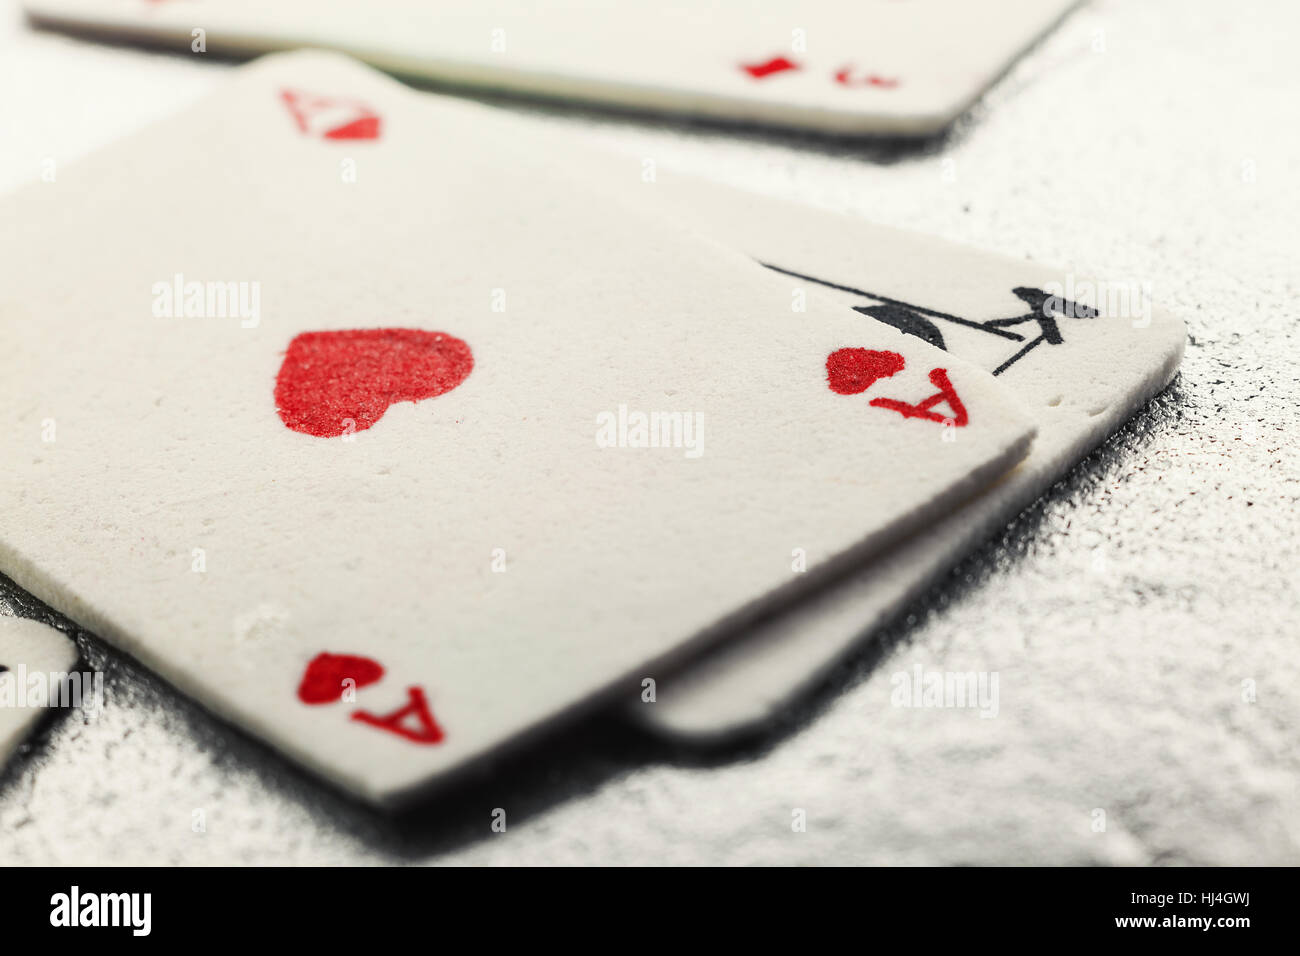 Decoration of a cake, gambling cards made of fondant. - Stock Image